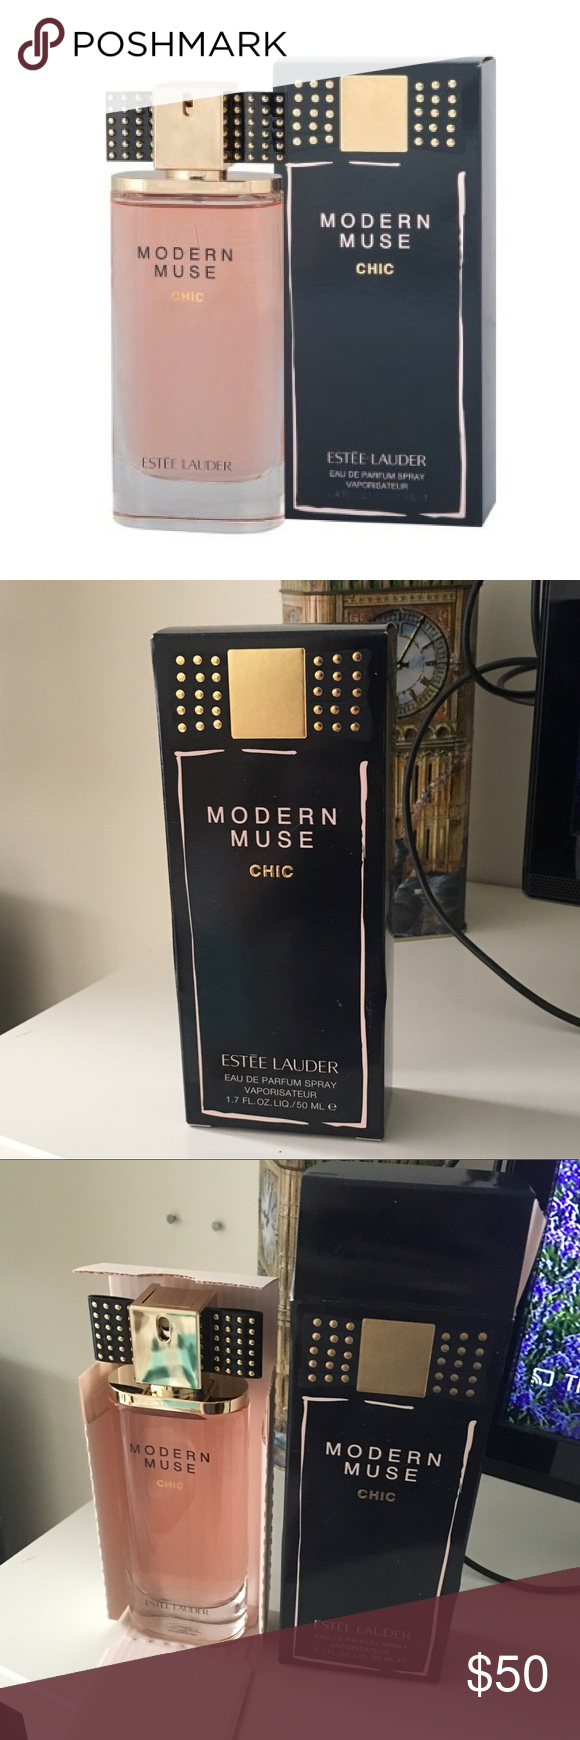 Modern Muse Chic Perfume By Estee Lauder In 2020 Chic Perfume Modern Muse Estee Lauder Brands